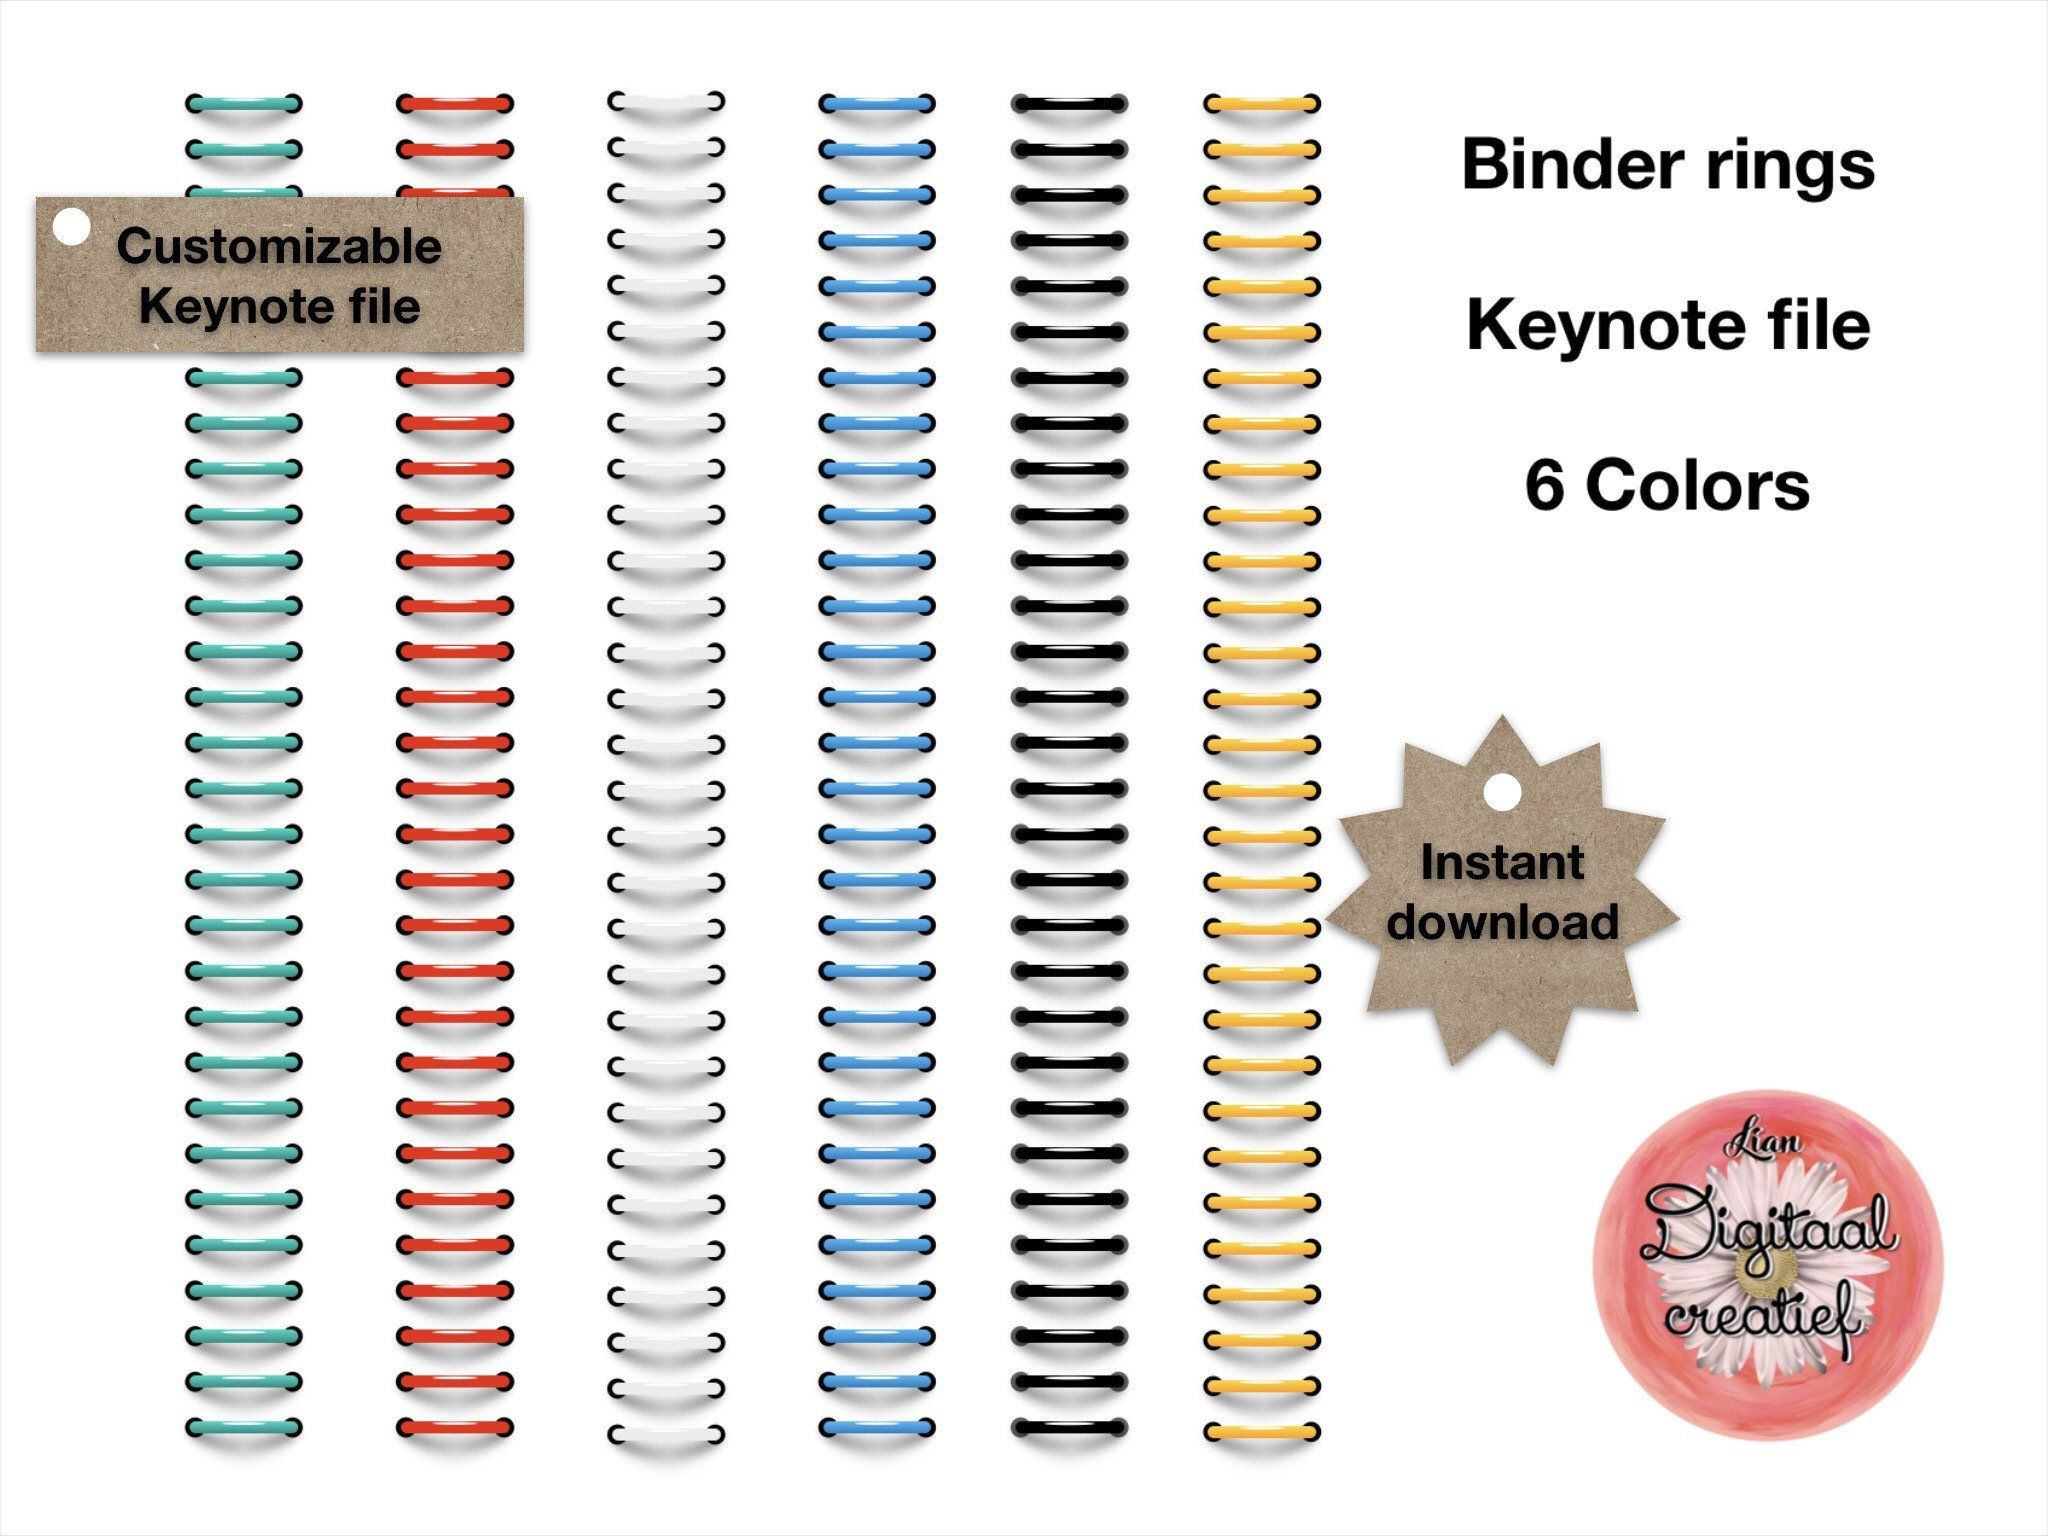 Digital binder rings 6 colors for digital planner or bulletjournal